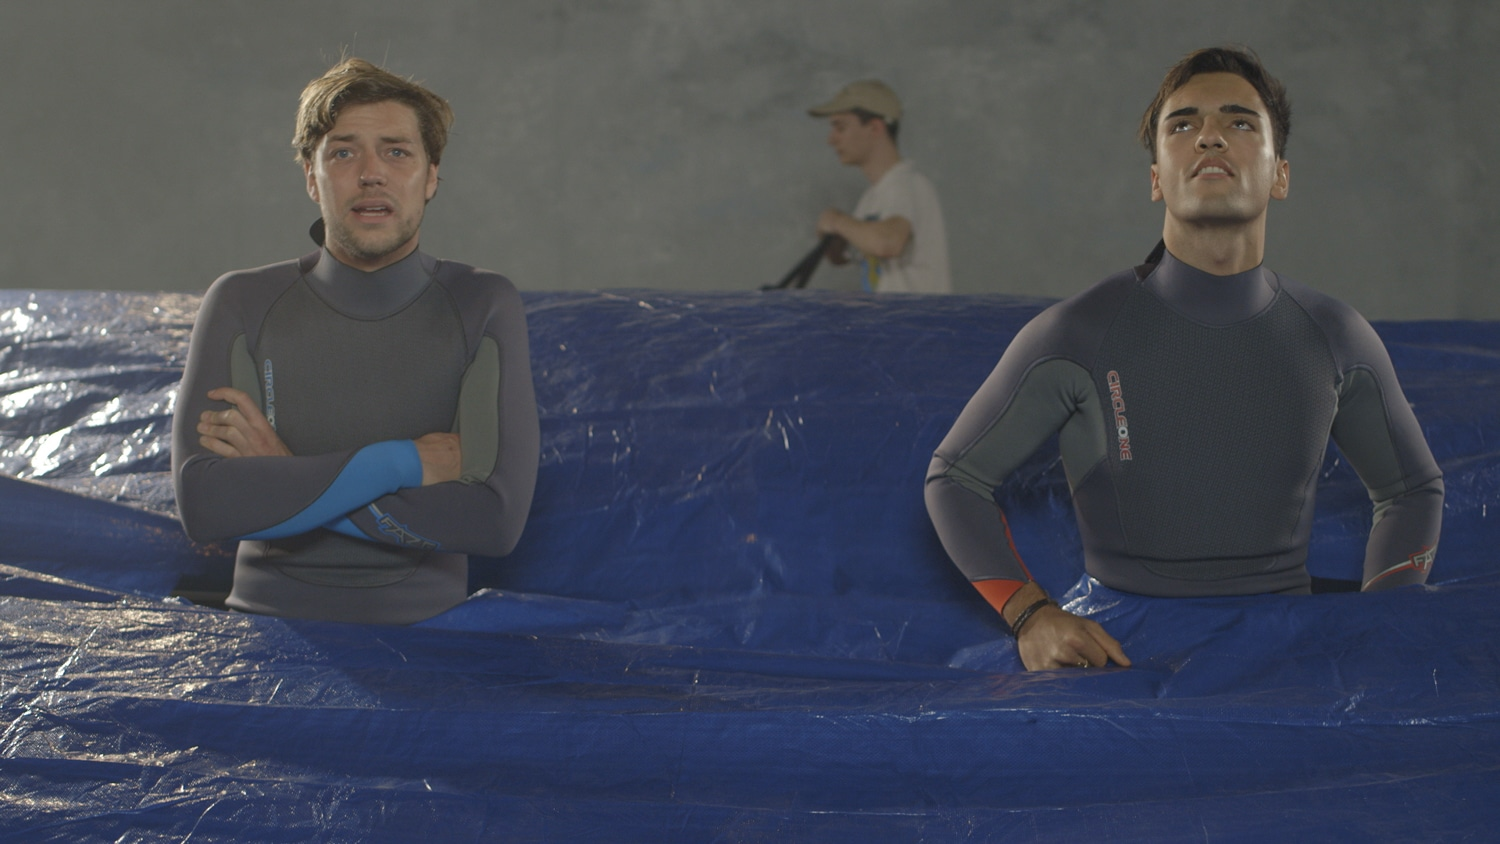 The Shorties entry: High Rollers // A film by Laurence Donoghue. Two wannabe pro surfers eagerly await the turn of the tide. A quirky, existential comedy.